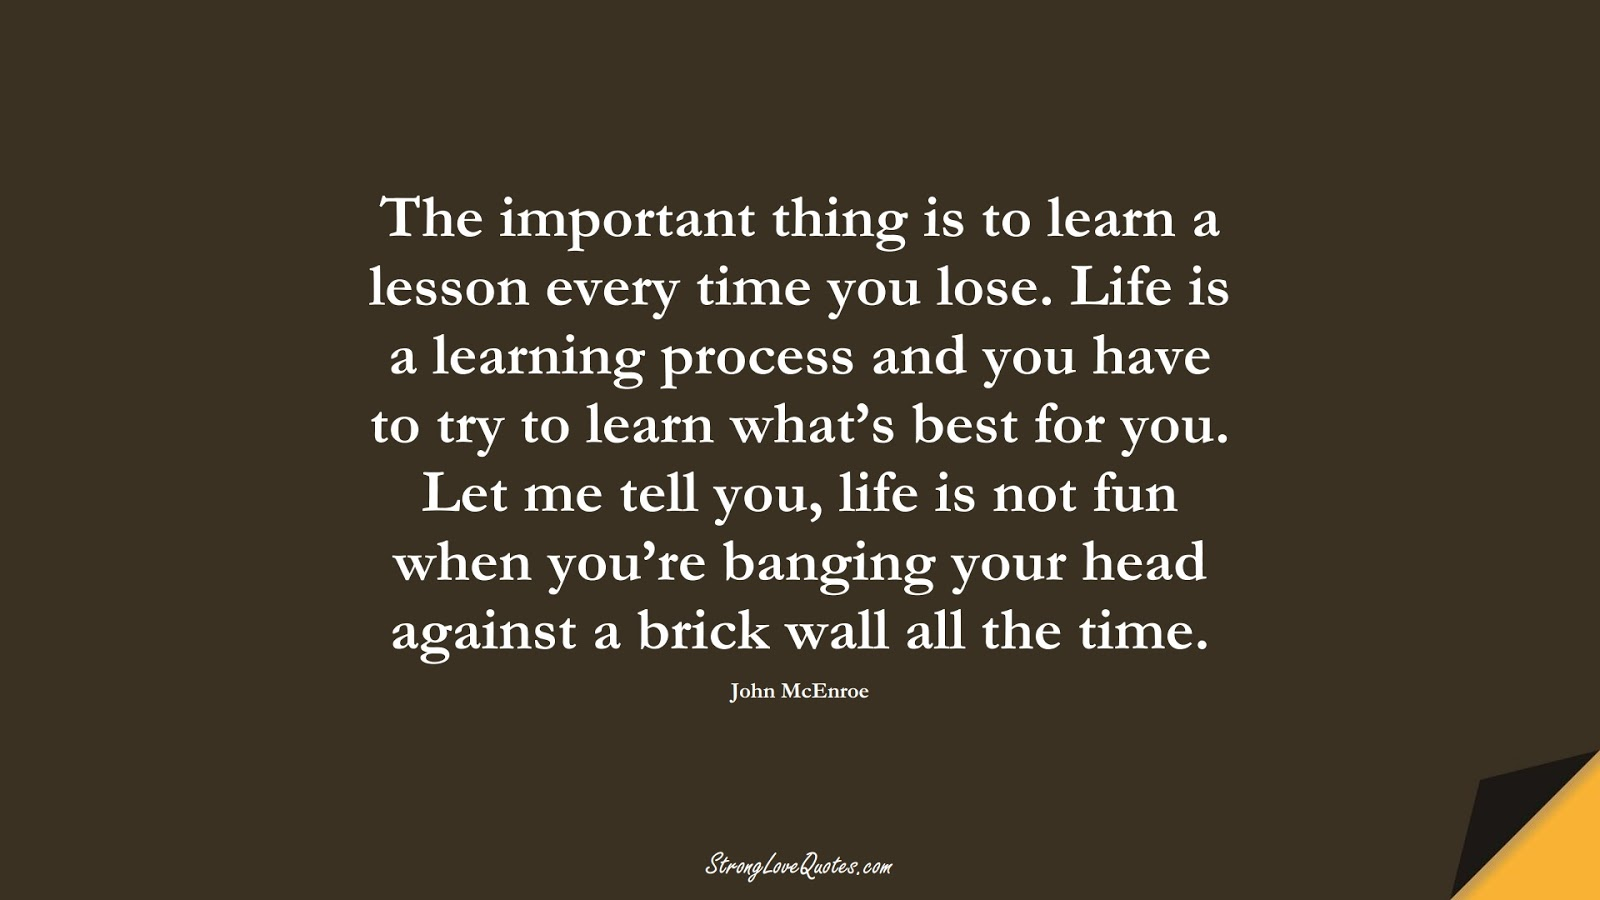 The important thing is to learn a lesson every time you lose. Life is a learning process and you have to try to learn what's best for you. Let me tell you, life is not fun when you're banging your head against a brick wall all the time. (John McEnroe);  #EducationQuotes